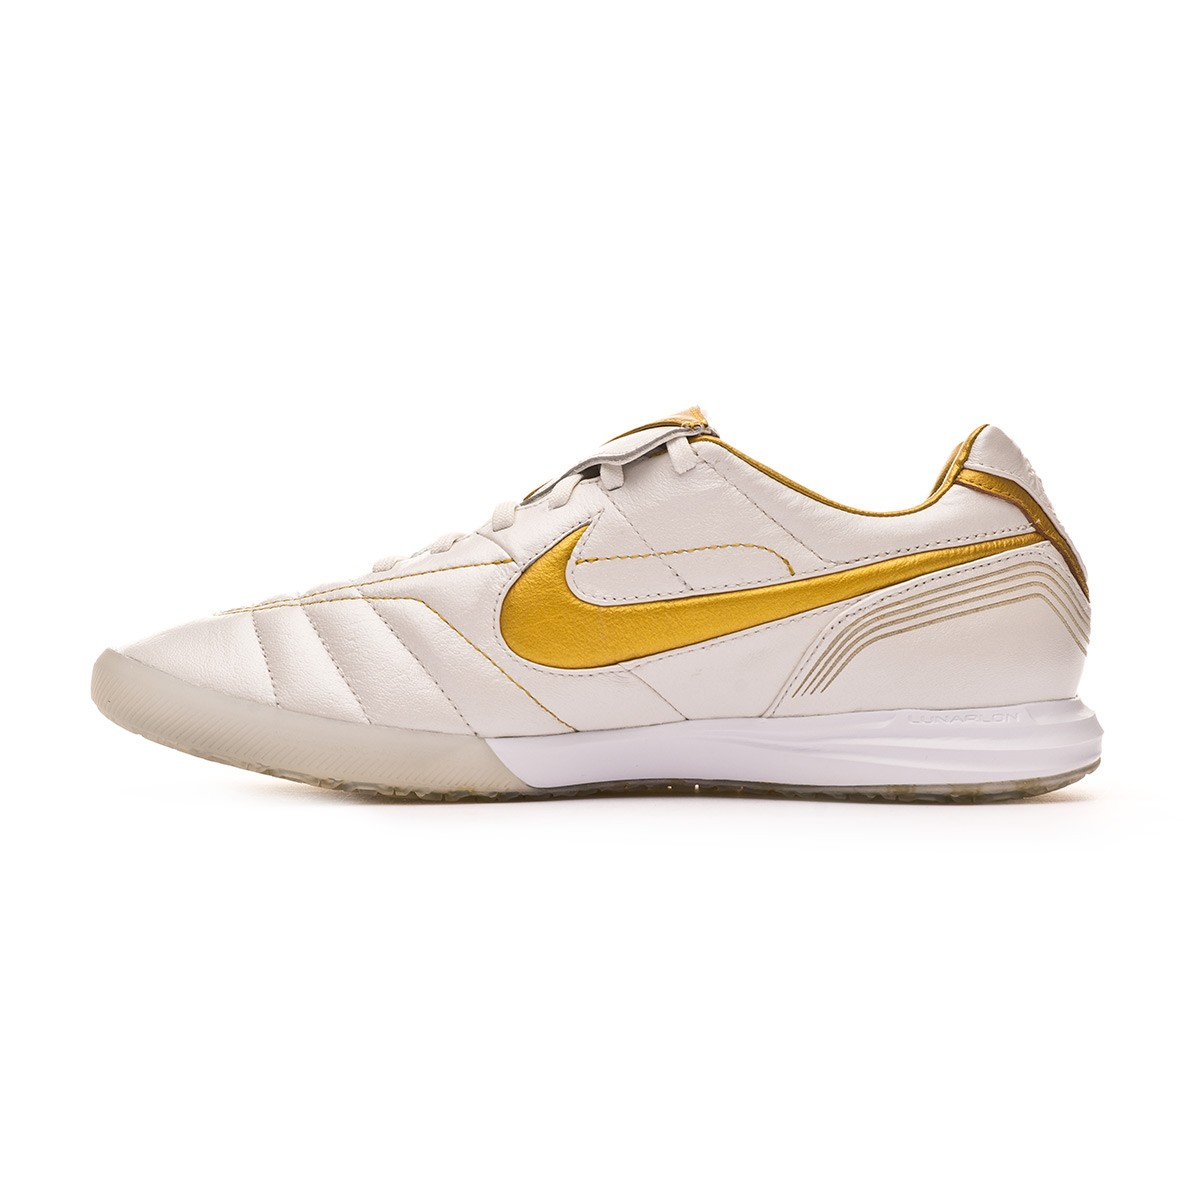 buy online 13013 8e909 Futsal Boot Nike Tiempo Lunar Legend VII Elite 10R IC Metallic  summit-Metallic Gold - Tienda de fútbol Fútbol Emotion